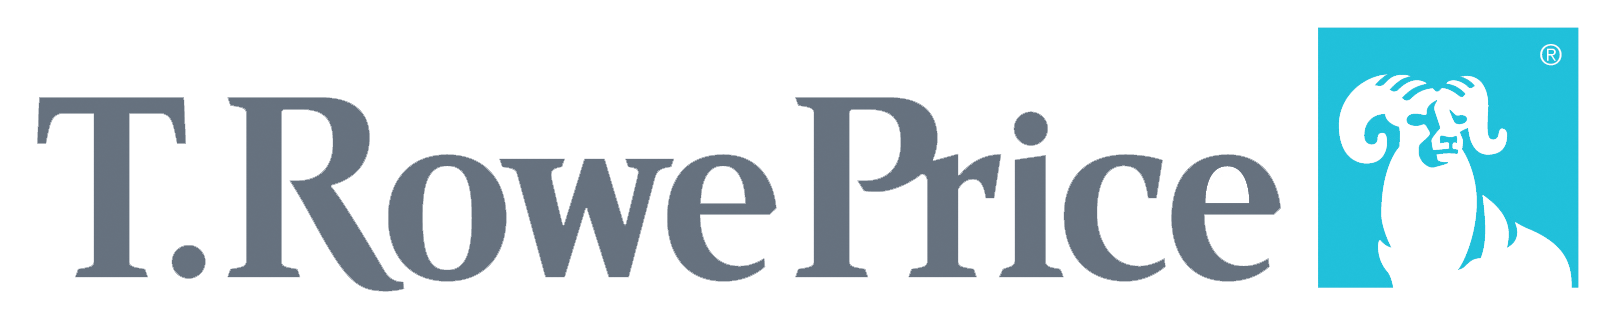 T_Rowe_Price_logo_transparent.png